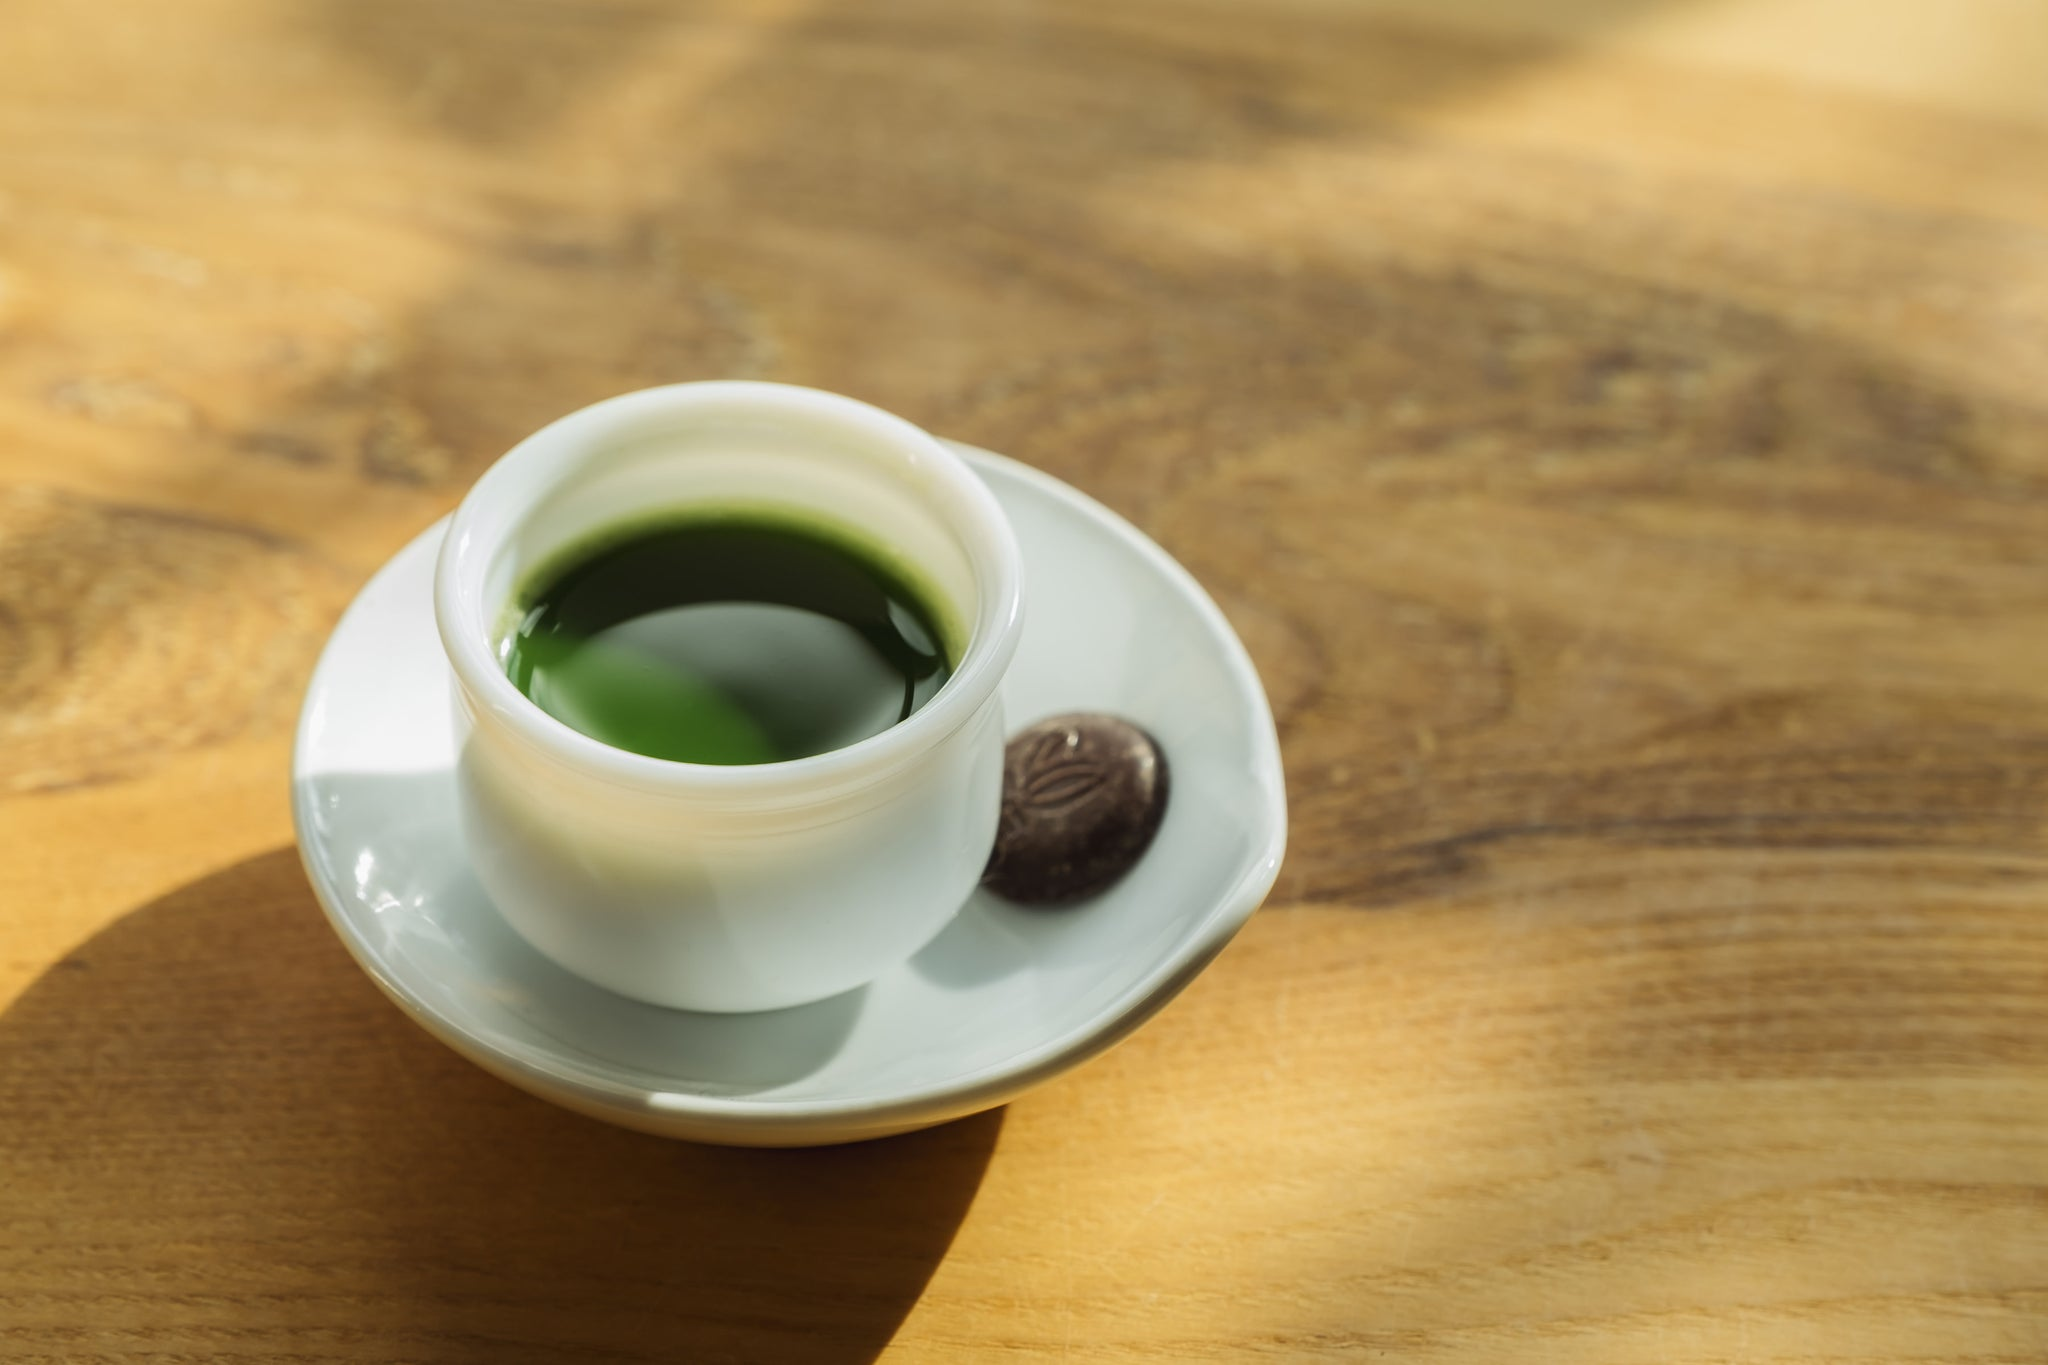 Pure Japanese matcha shot with chocolate. Green Tea